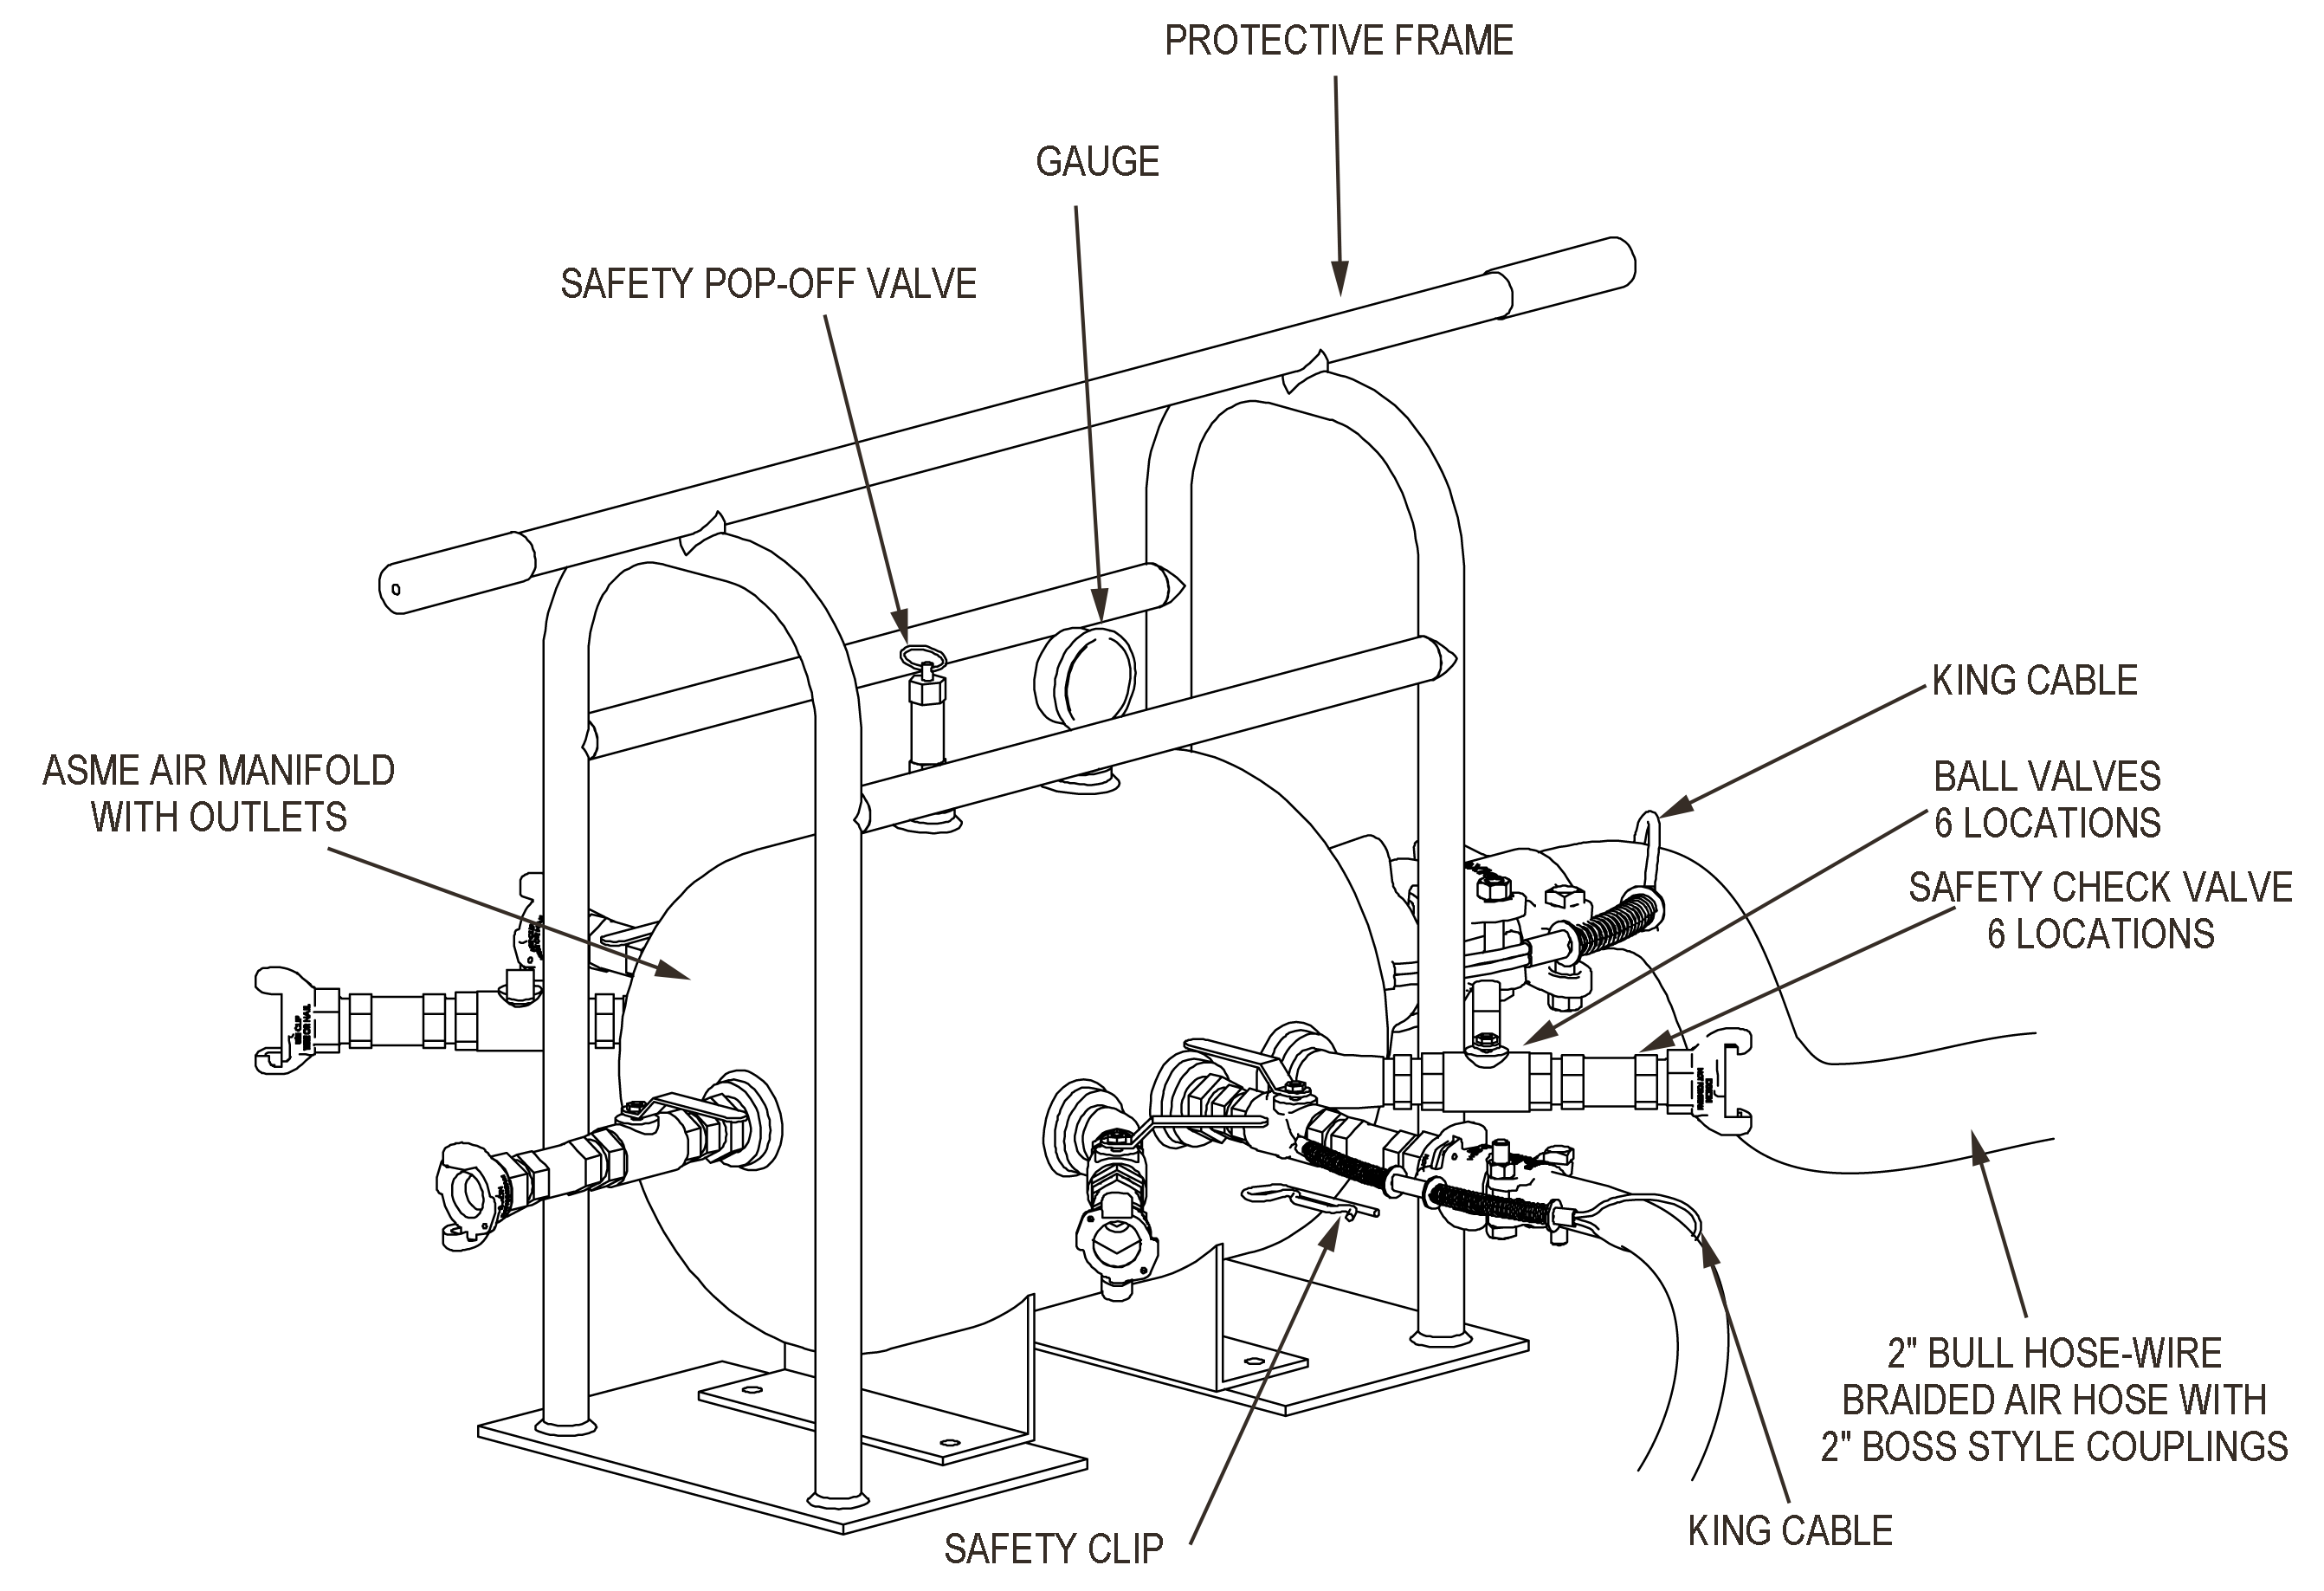 Cb175 wiring diagram detailed view of manifold assmbly cb175 wiring diagram